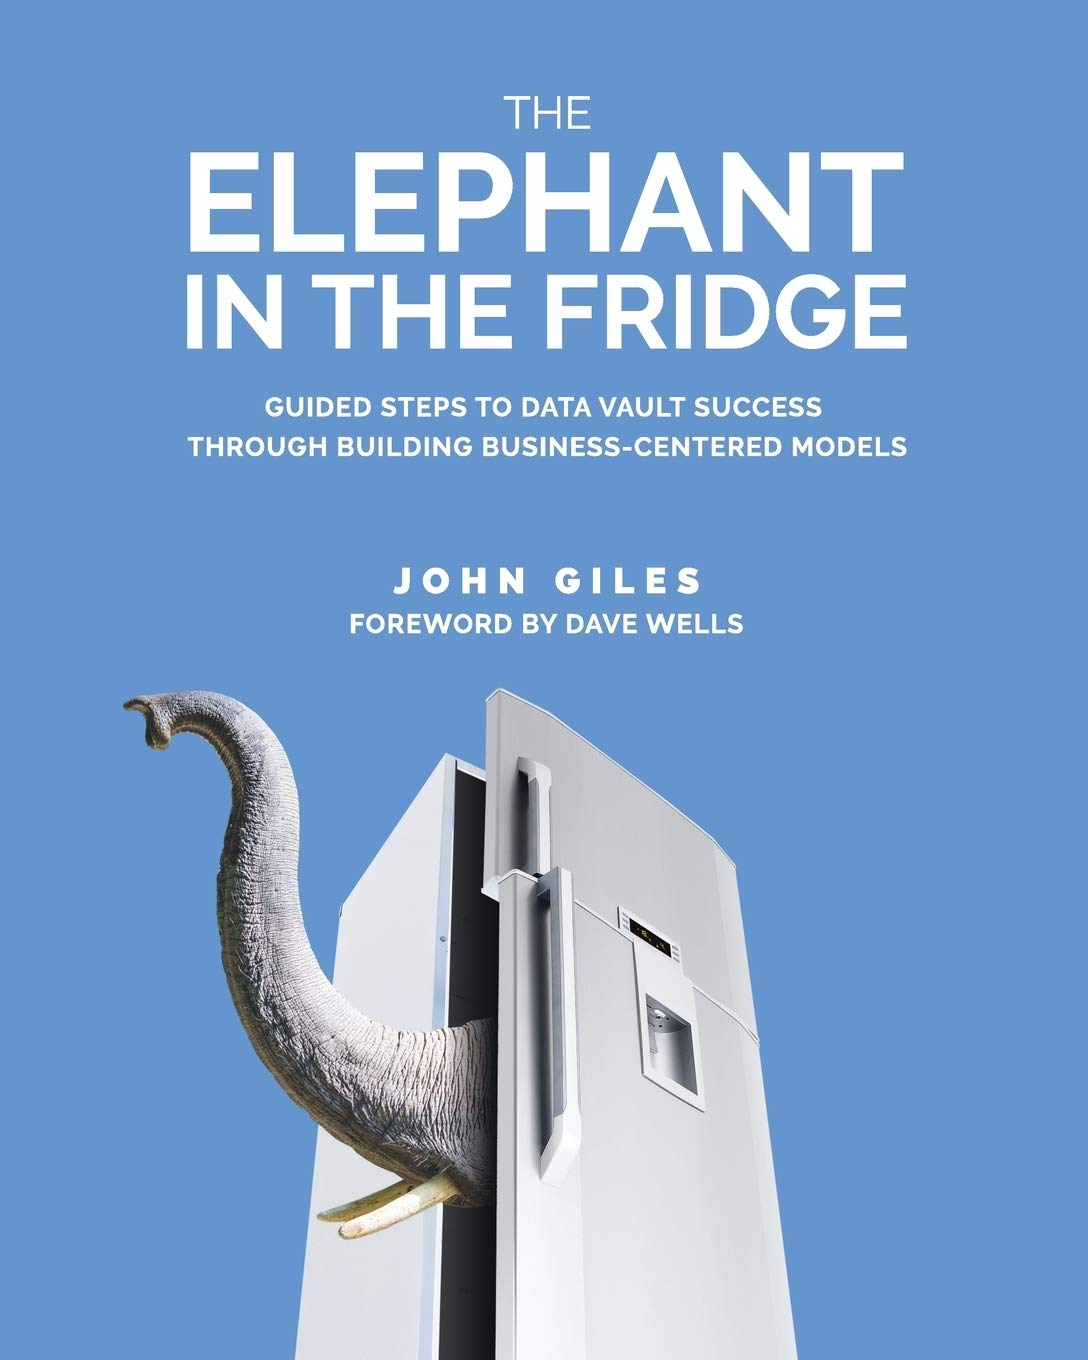 Download The Elephant In The Fridge: Guided Steps To Data Vault Success Through Building Business-Centered Models 